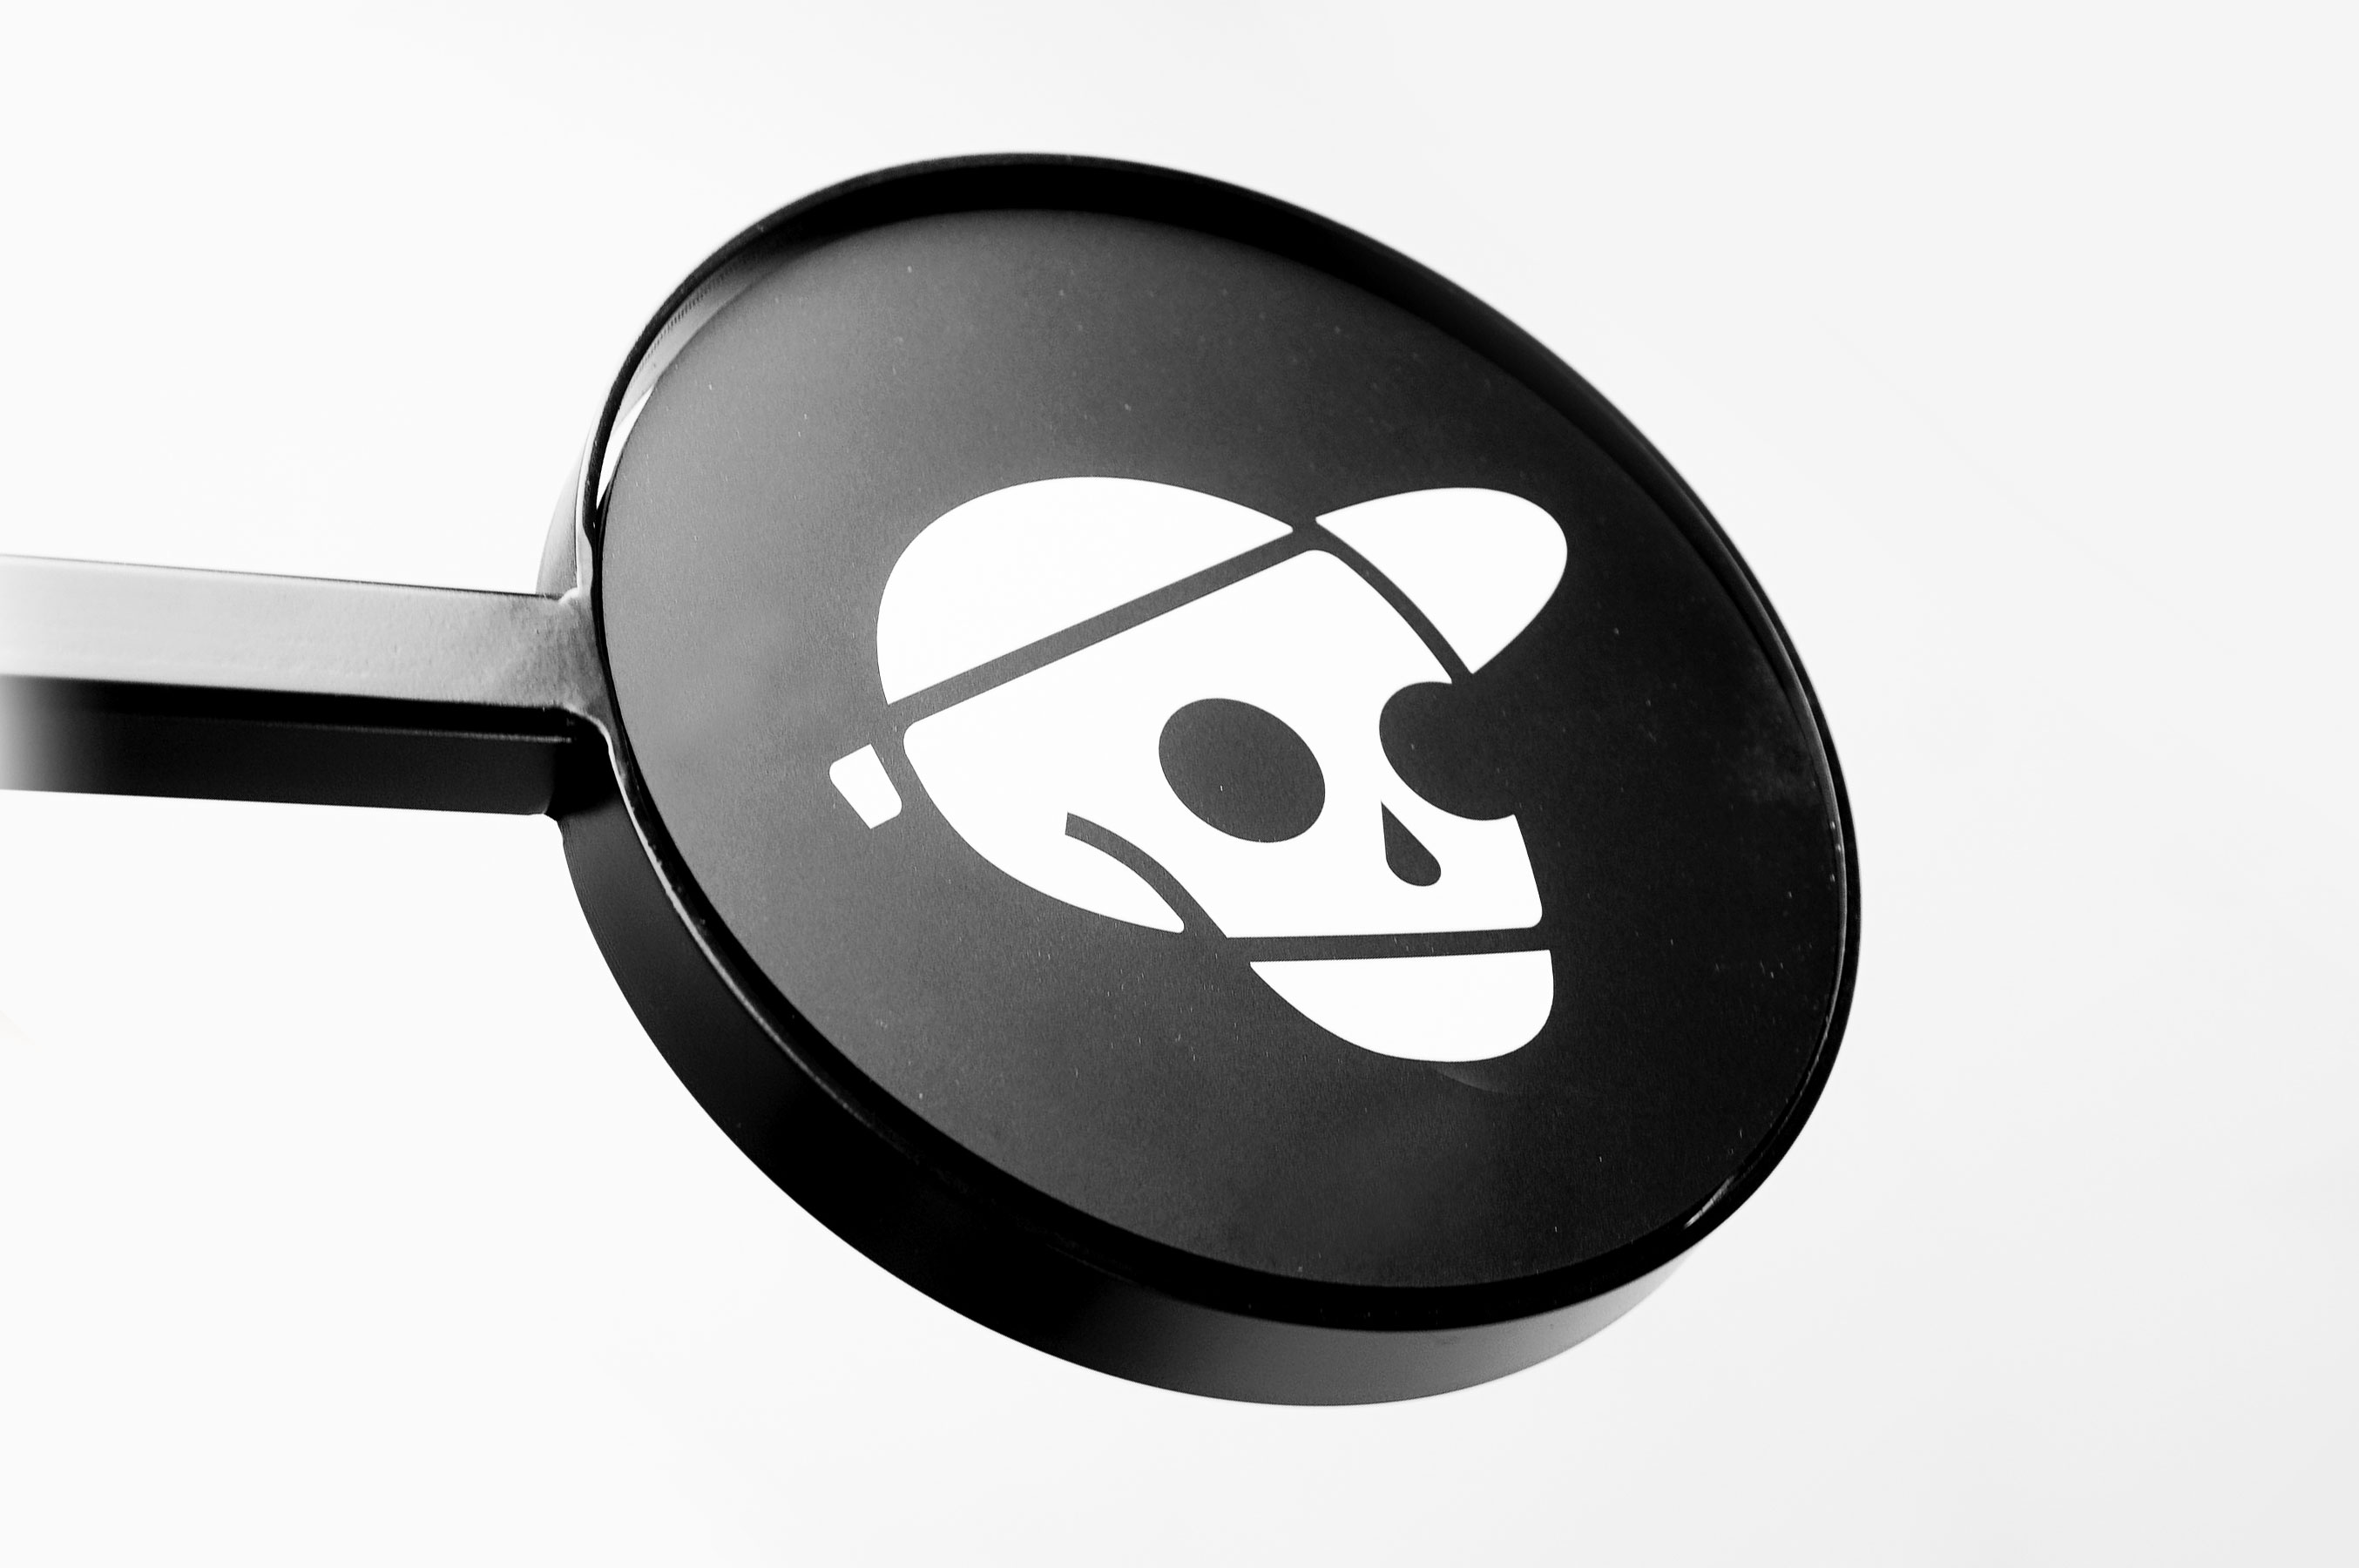 Skeleton logo on retro black interior blade sign for the studio of Reece Parker, a freelance animation director and illustrator based in Seattle, WA.